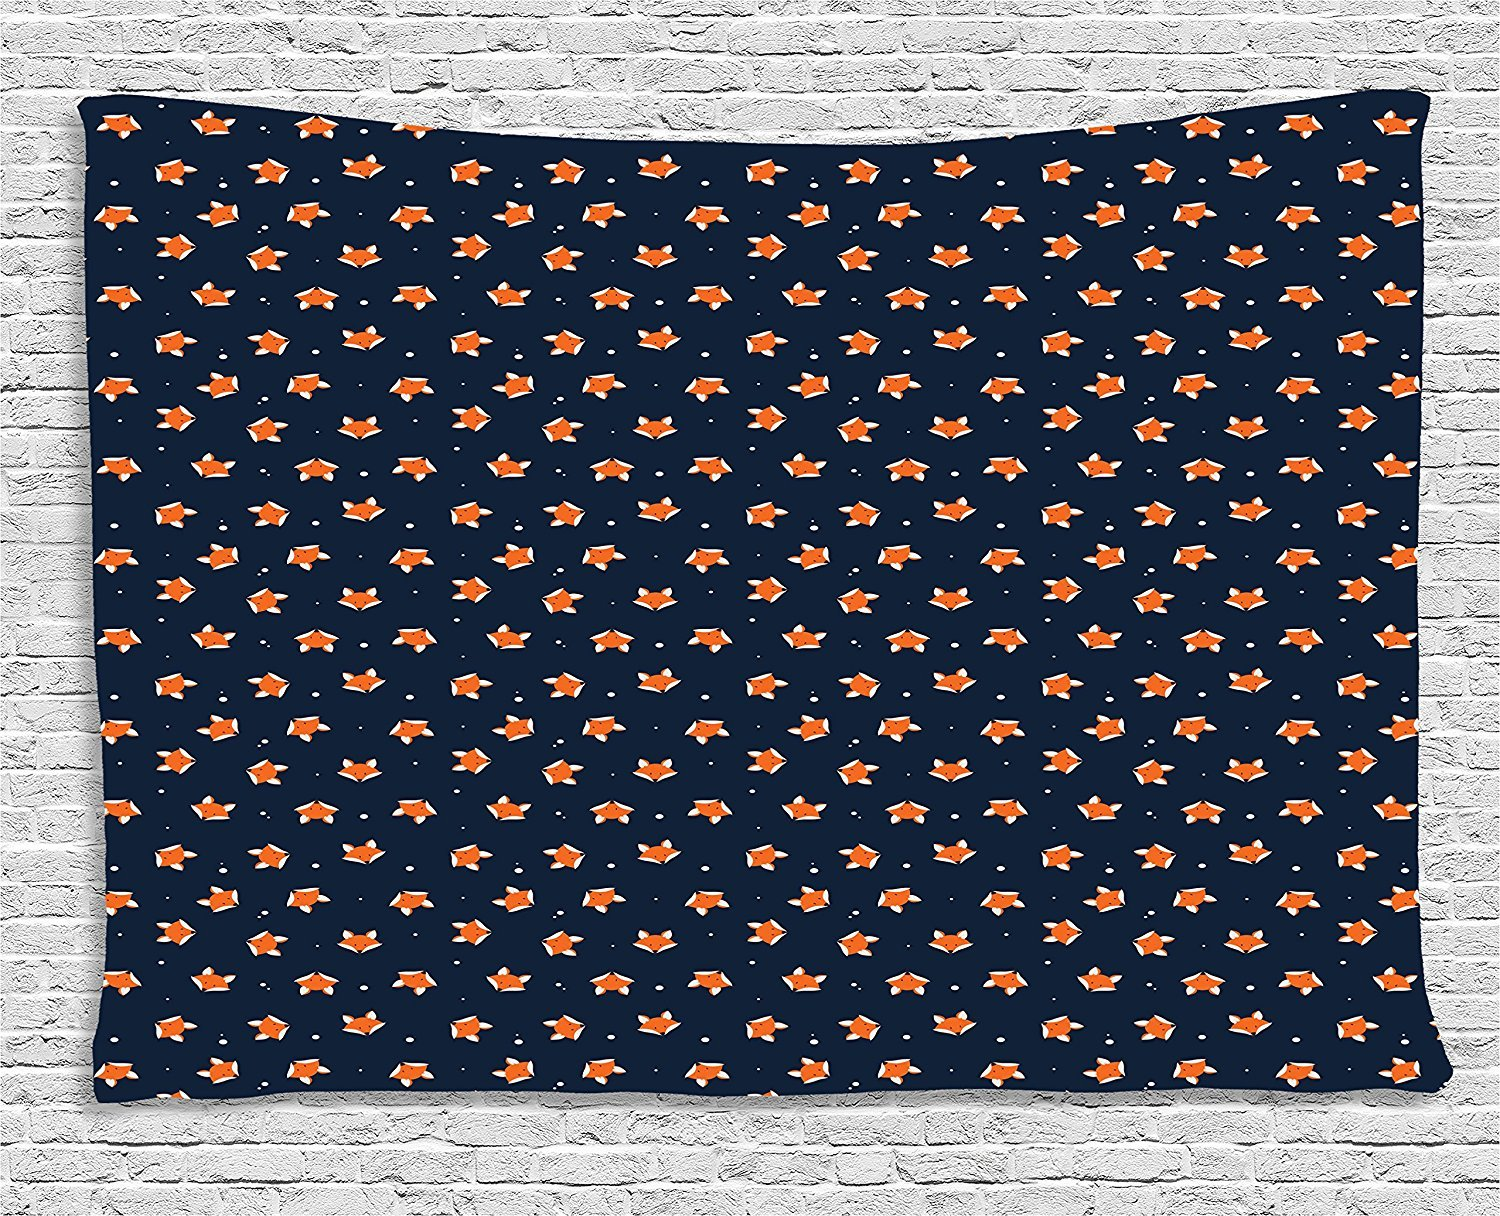 asddcdfdd Fox Tapestry, Orange Small Forest Animal Portraits Pattern on Abstract Dotted Blue Backdrop, Wall Hanging for Bedroom Living Room Dorm, 80 W X 60 L Inches, Navy Blue Orange